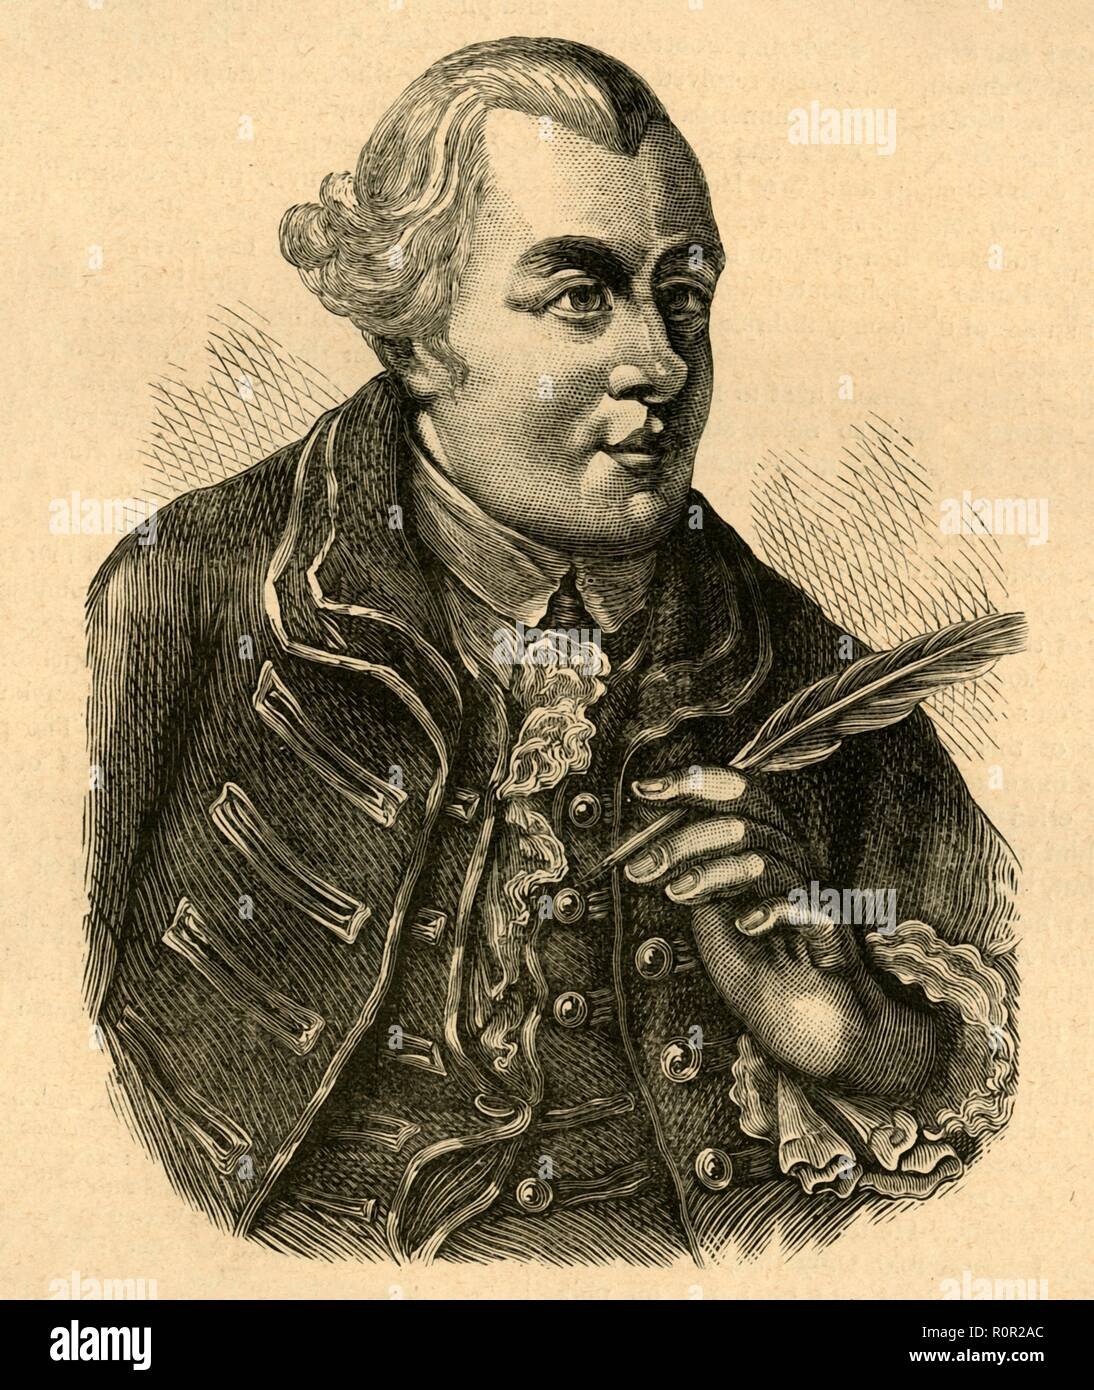 'John Wilkes', (1897). Portrait of English journalist and radical MP John Wilkes (1762-1763). On several occasions the London mob rose in his support and the streets resounded to cries of 'Wilkes and Liberty'. From Old and New London, Volume I, by Walter Thornbury. [Cassell and Company, Limited, London, Paris & Melbourne, 1897] - Stock Image